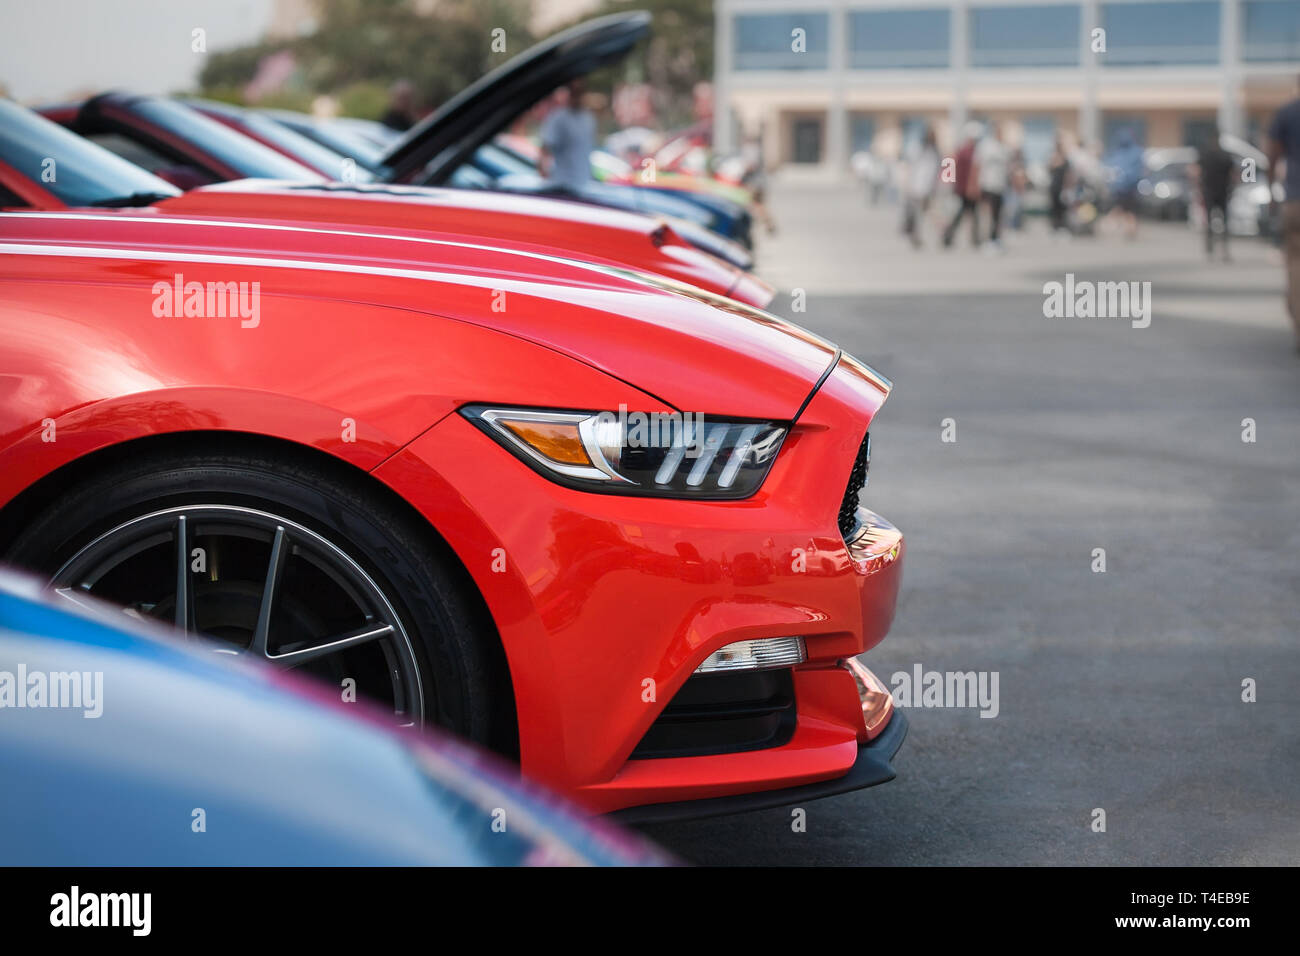 Side view of a ford mustang show car from the 2019 fabulous fords forever auto show in Anaheim California. Stock Photo